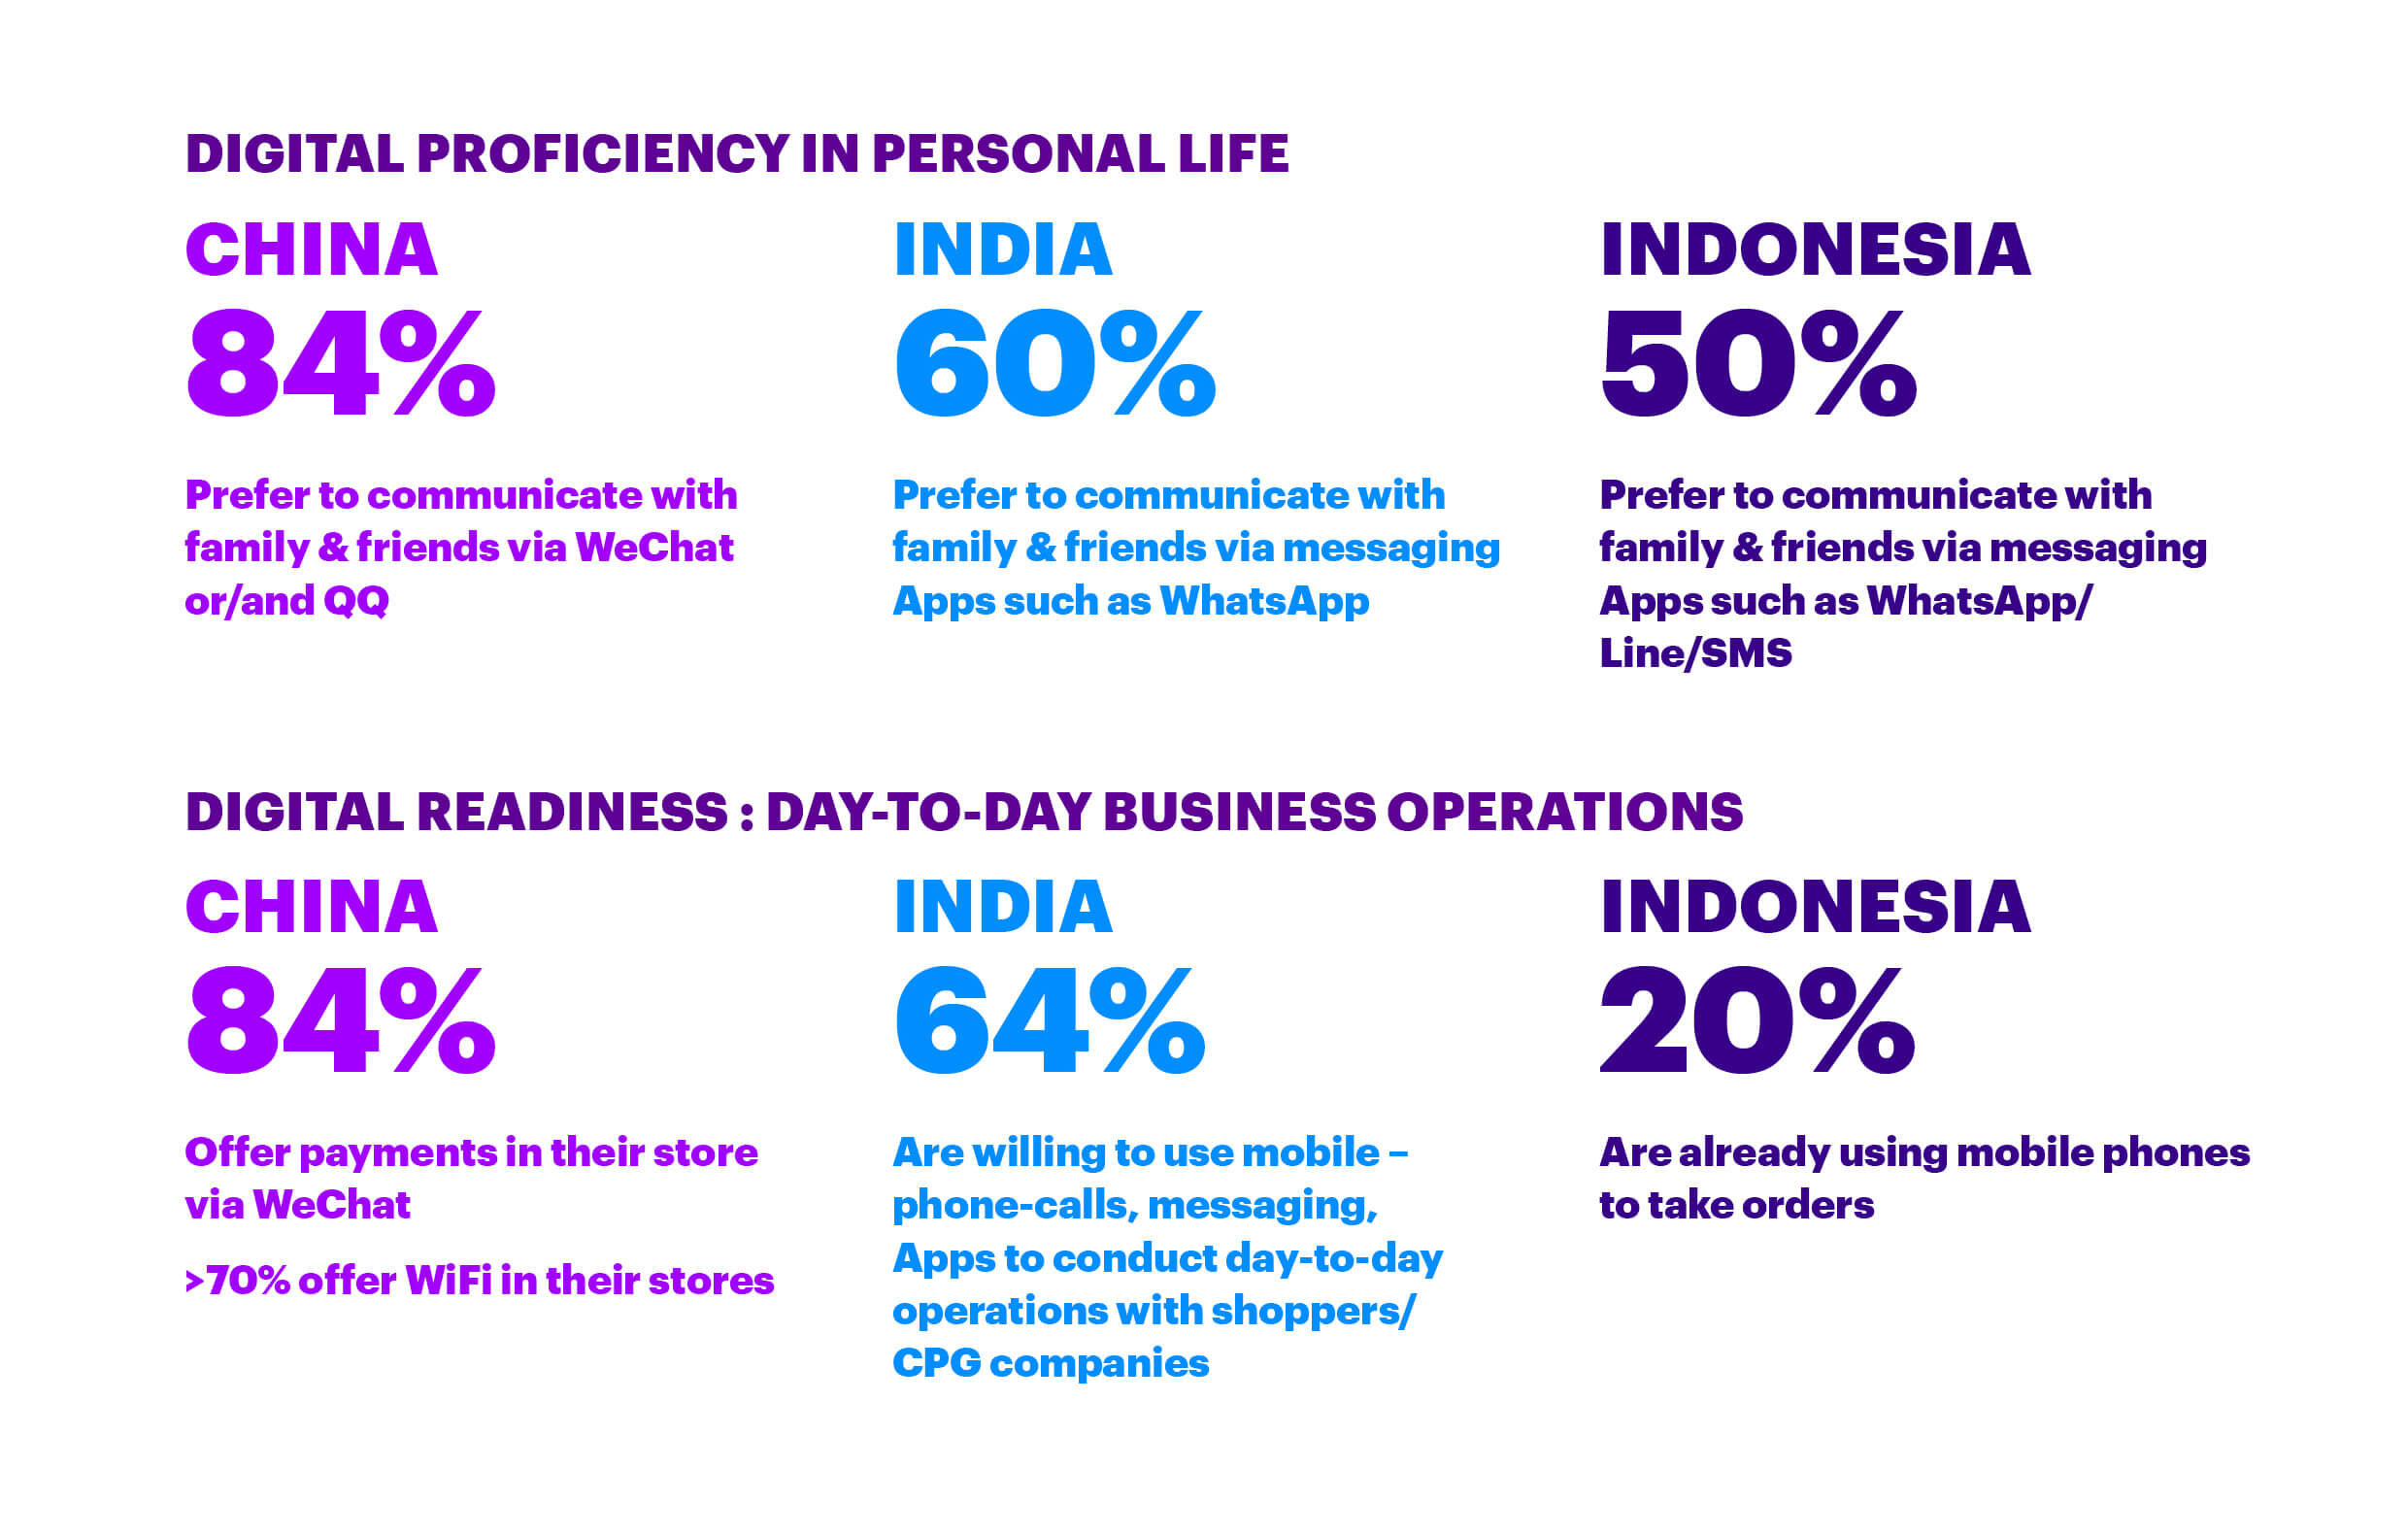 New Era of Trade for CPG Industry | Accenture